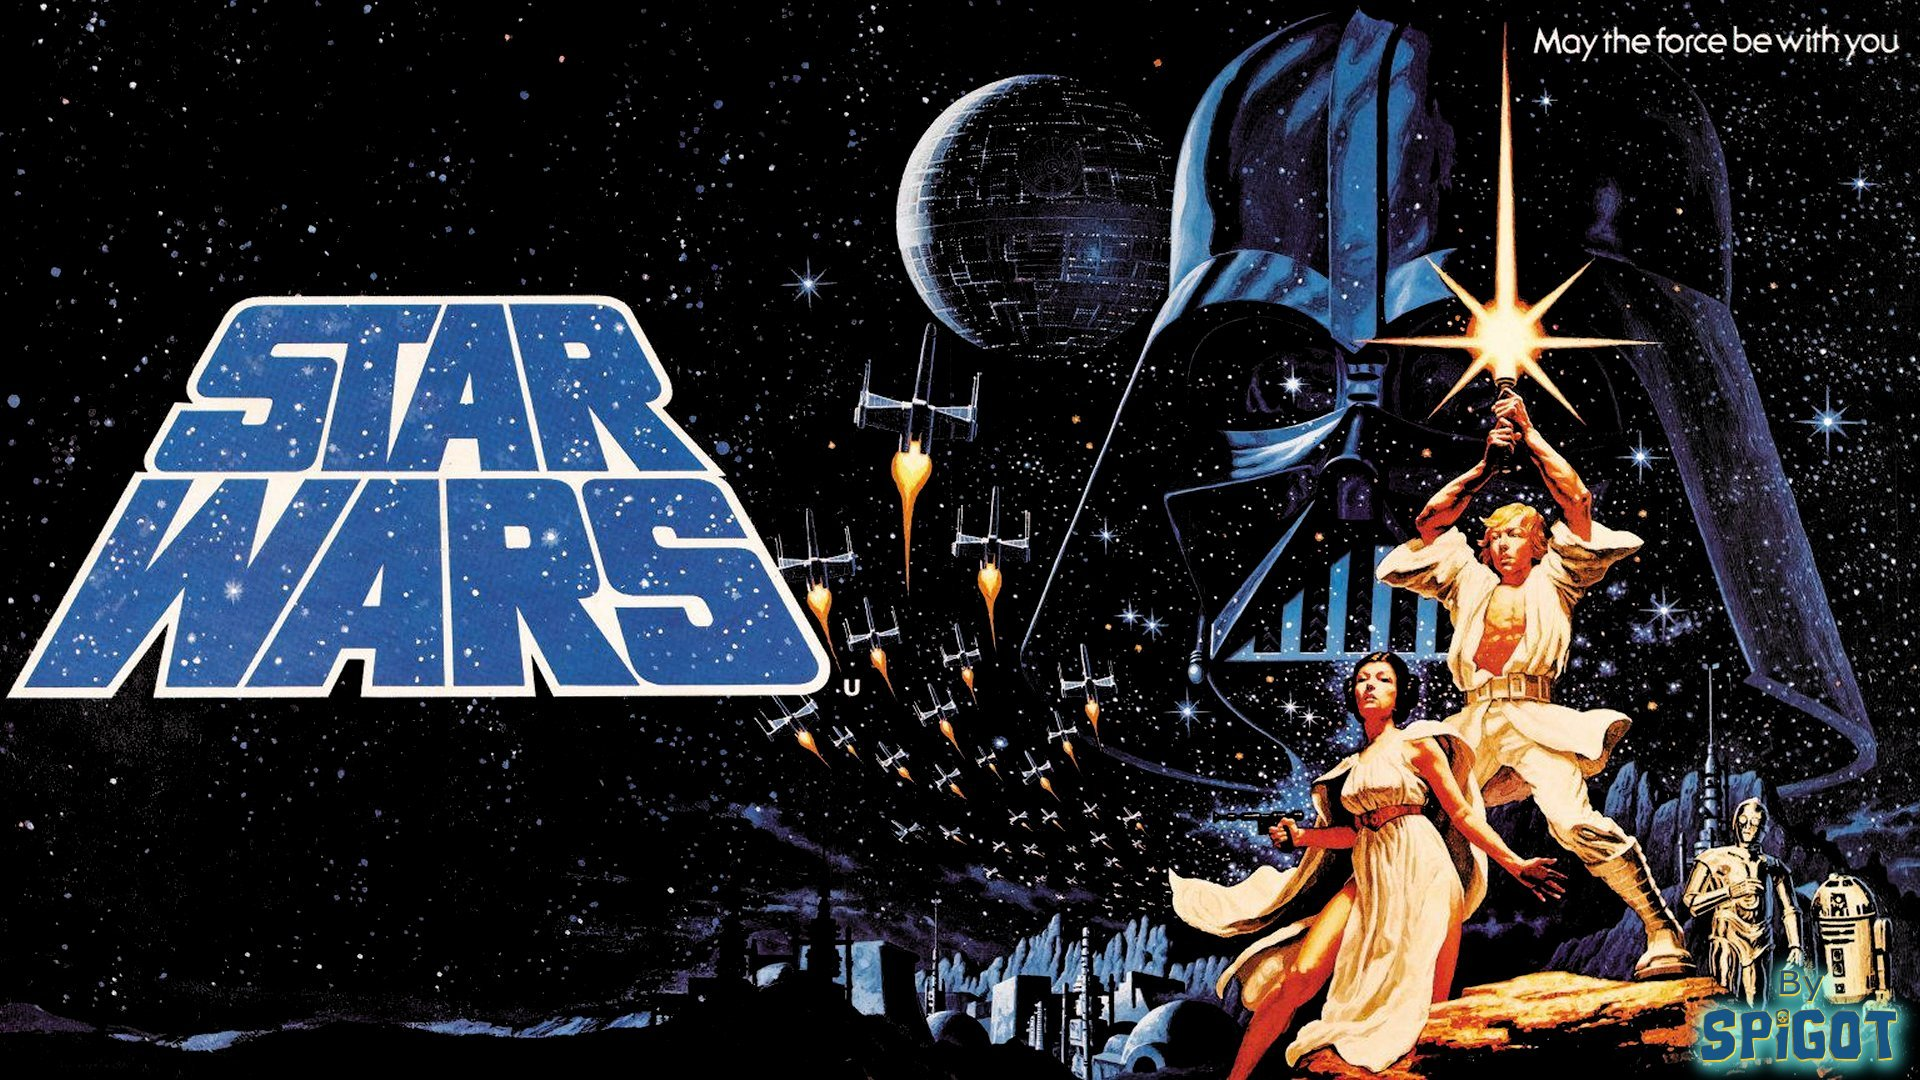 50 Star Wars Poster Wallpaper On Wallpapersafari